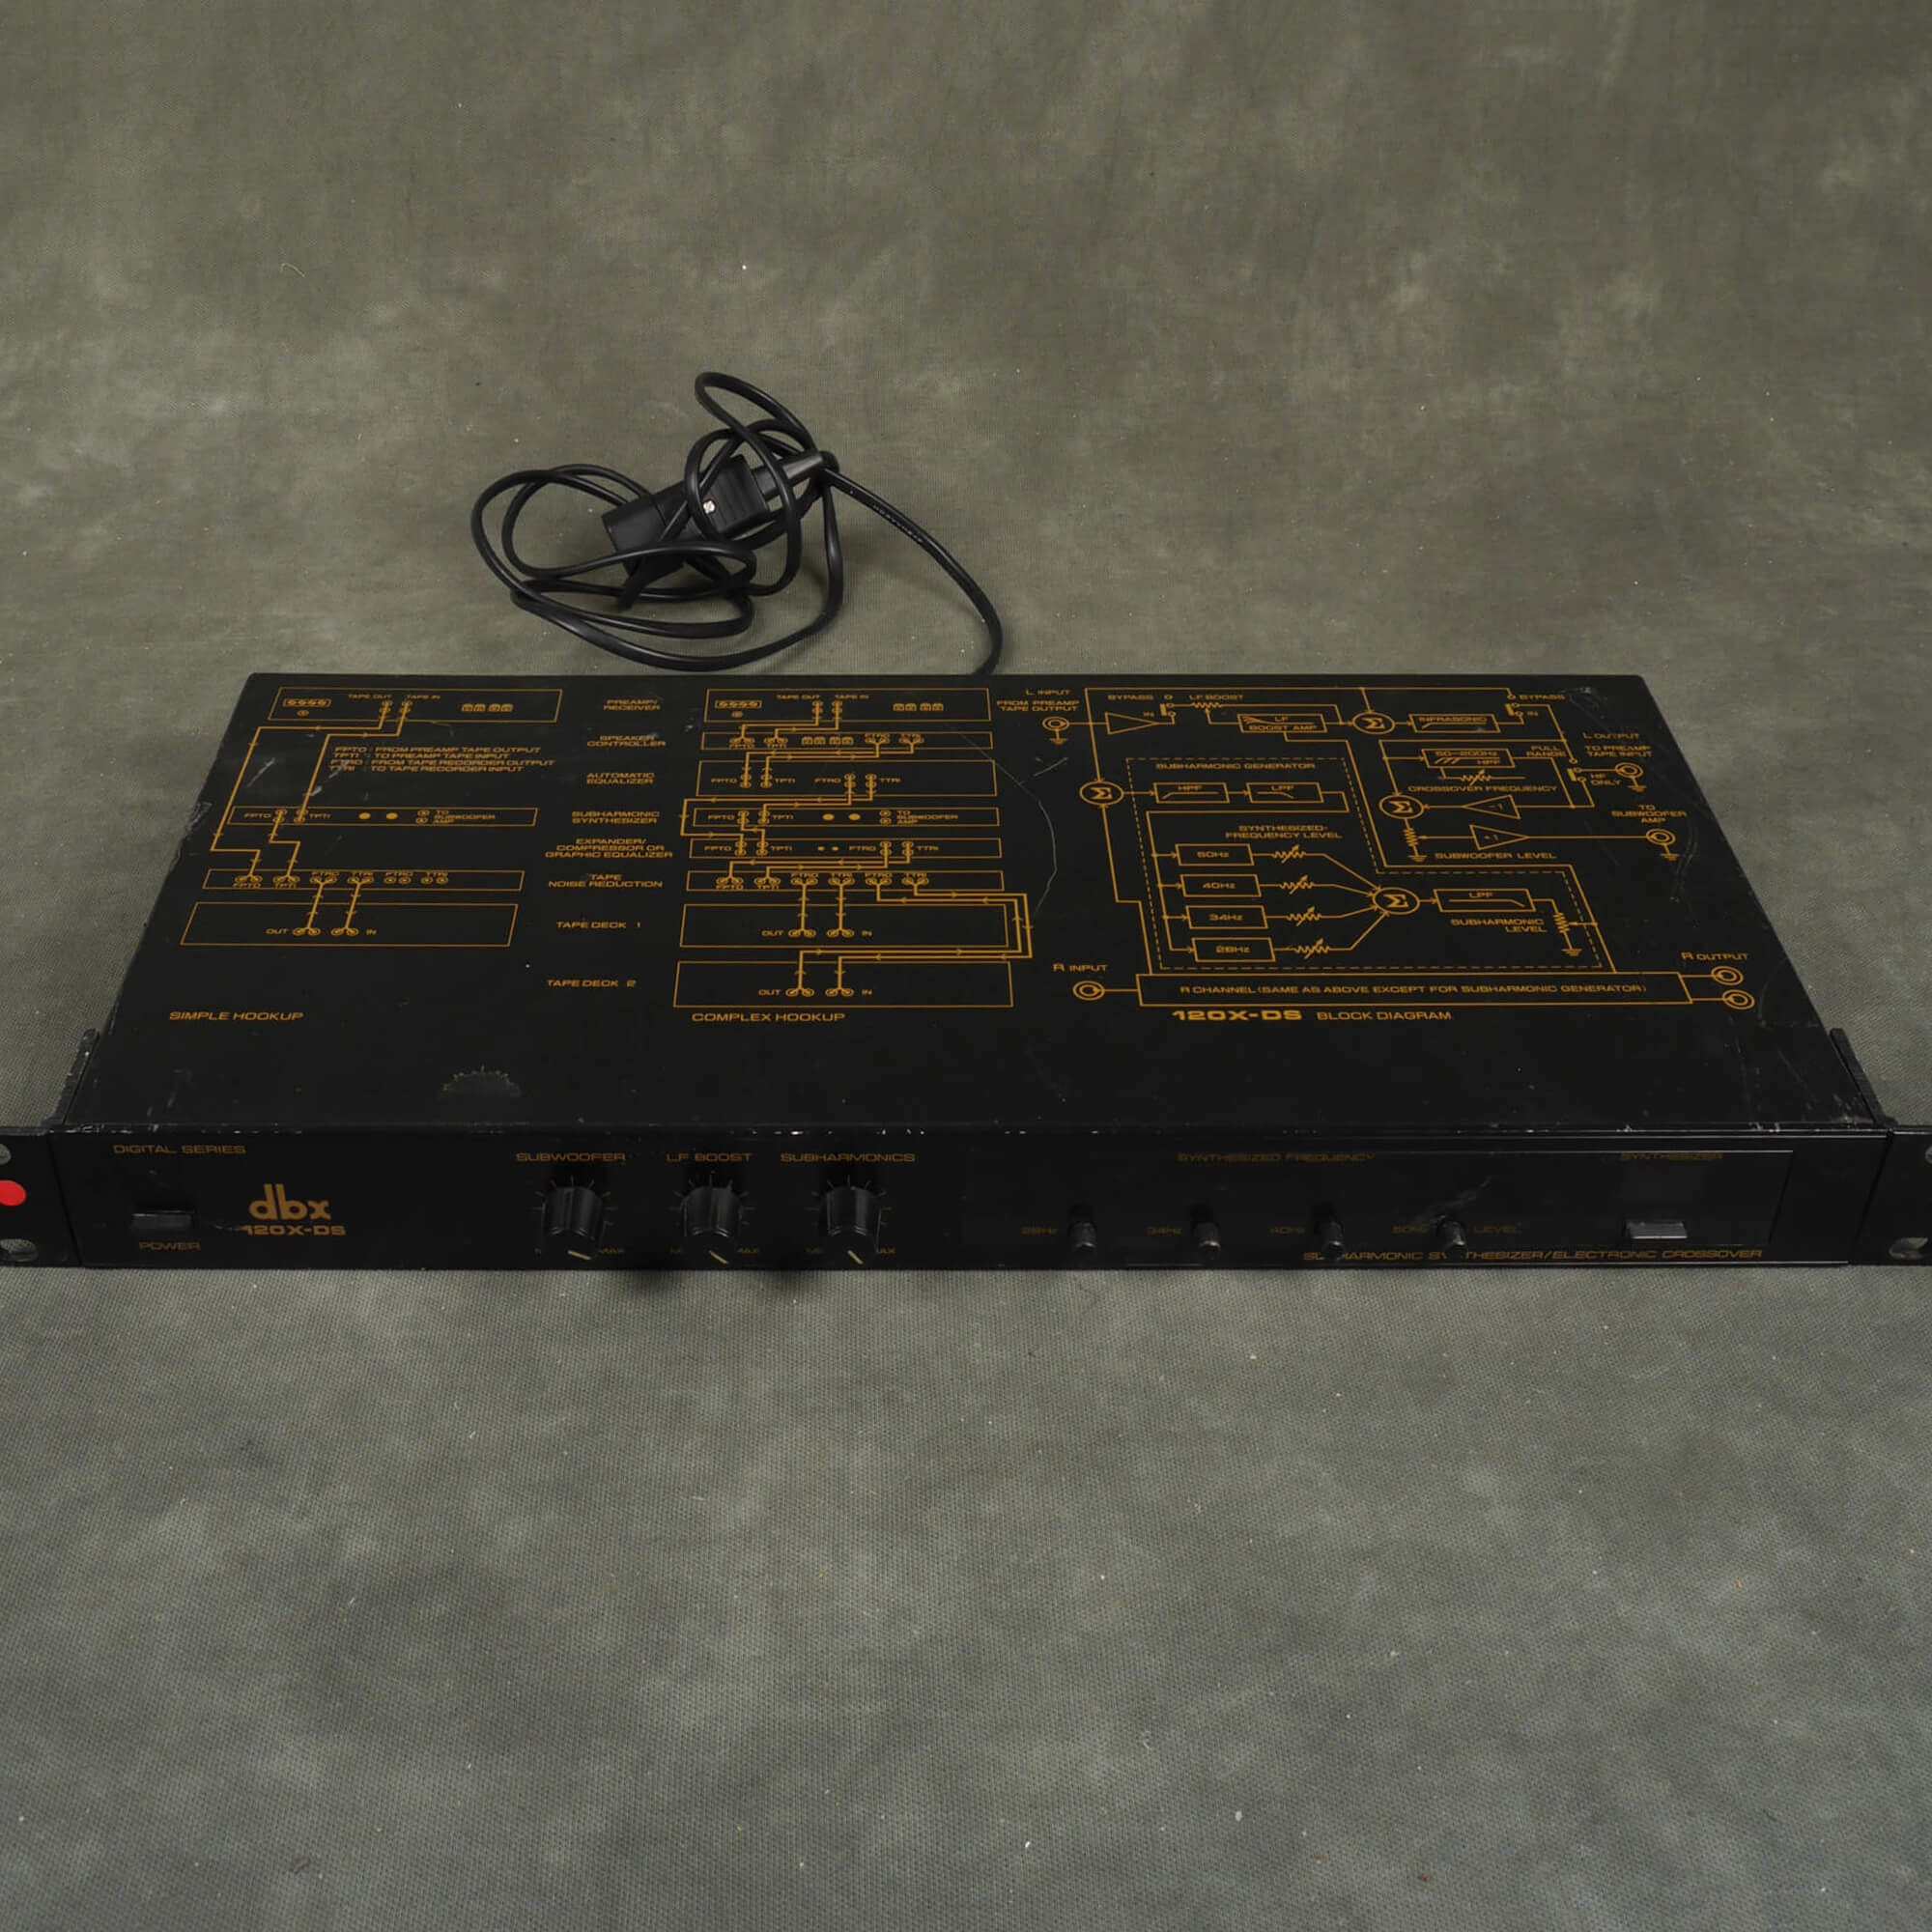 DBX 120X-DS Sub Harmonic Synthersiser Module - 2nd Hand